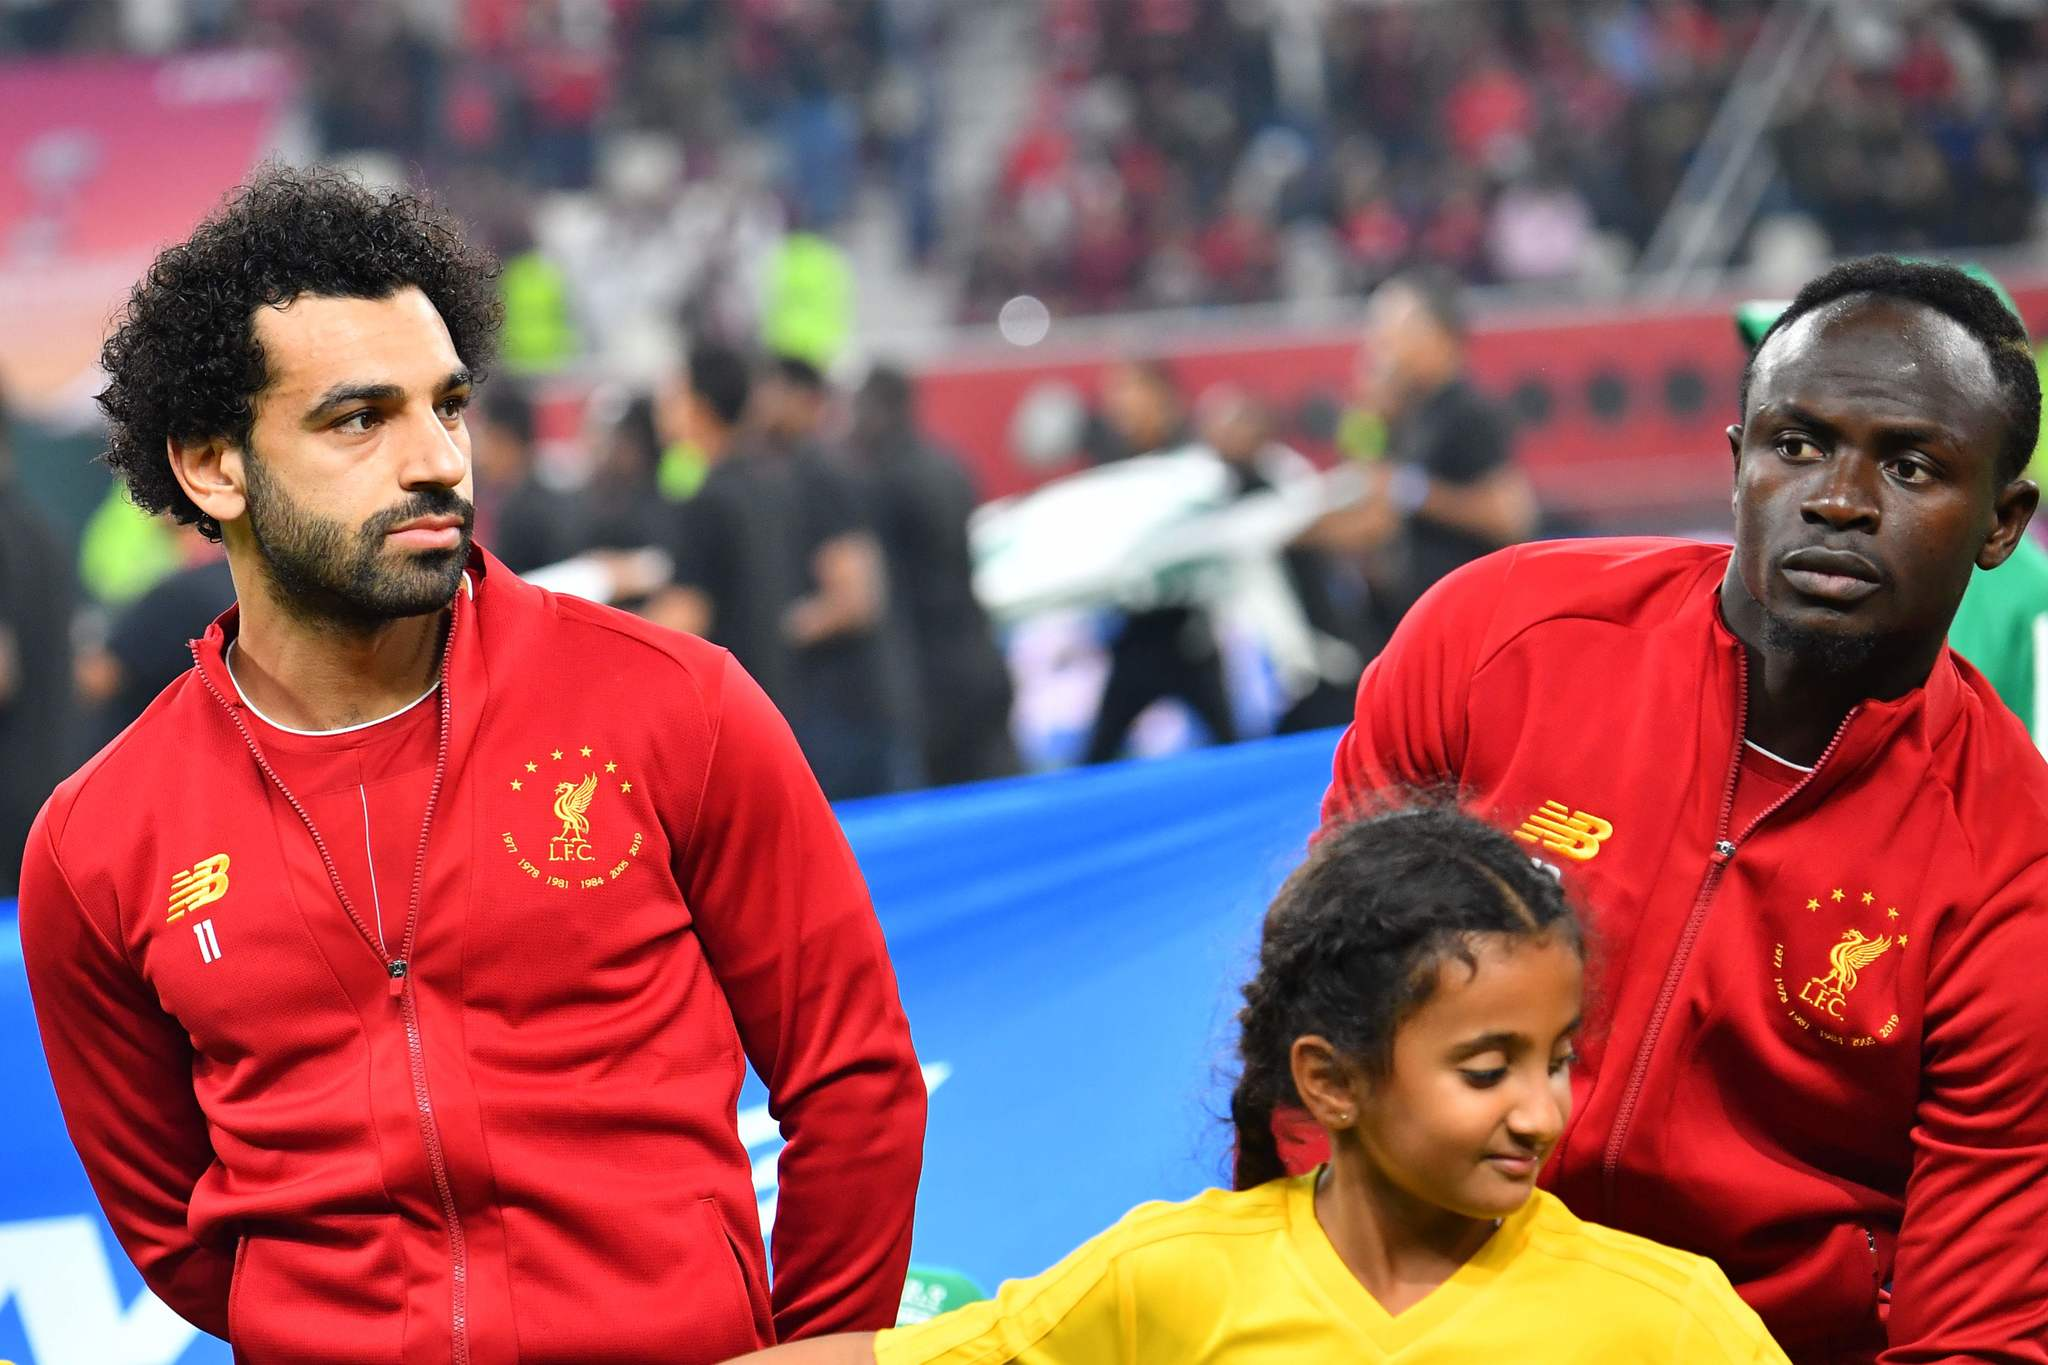 Liverpools Senegalese striker Sadio <HIT>Mane</HIT> (R) and Liverpools Egyptian midfielder Mohamed <HIT>Salah</HIT> look on ahead of the 2019 FIFA Club World Cup Final football match between Englands Liverpool and Brazils Flamengo at the Khalifa International Stadium in the Qatari capital Doha on December 21, 2019. (Photo by Giuseppe CACACE / AFP)